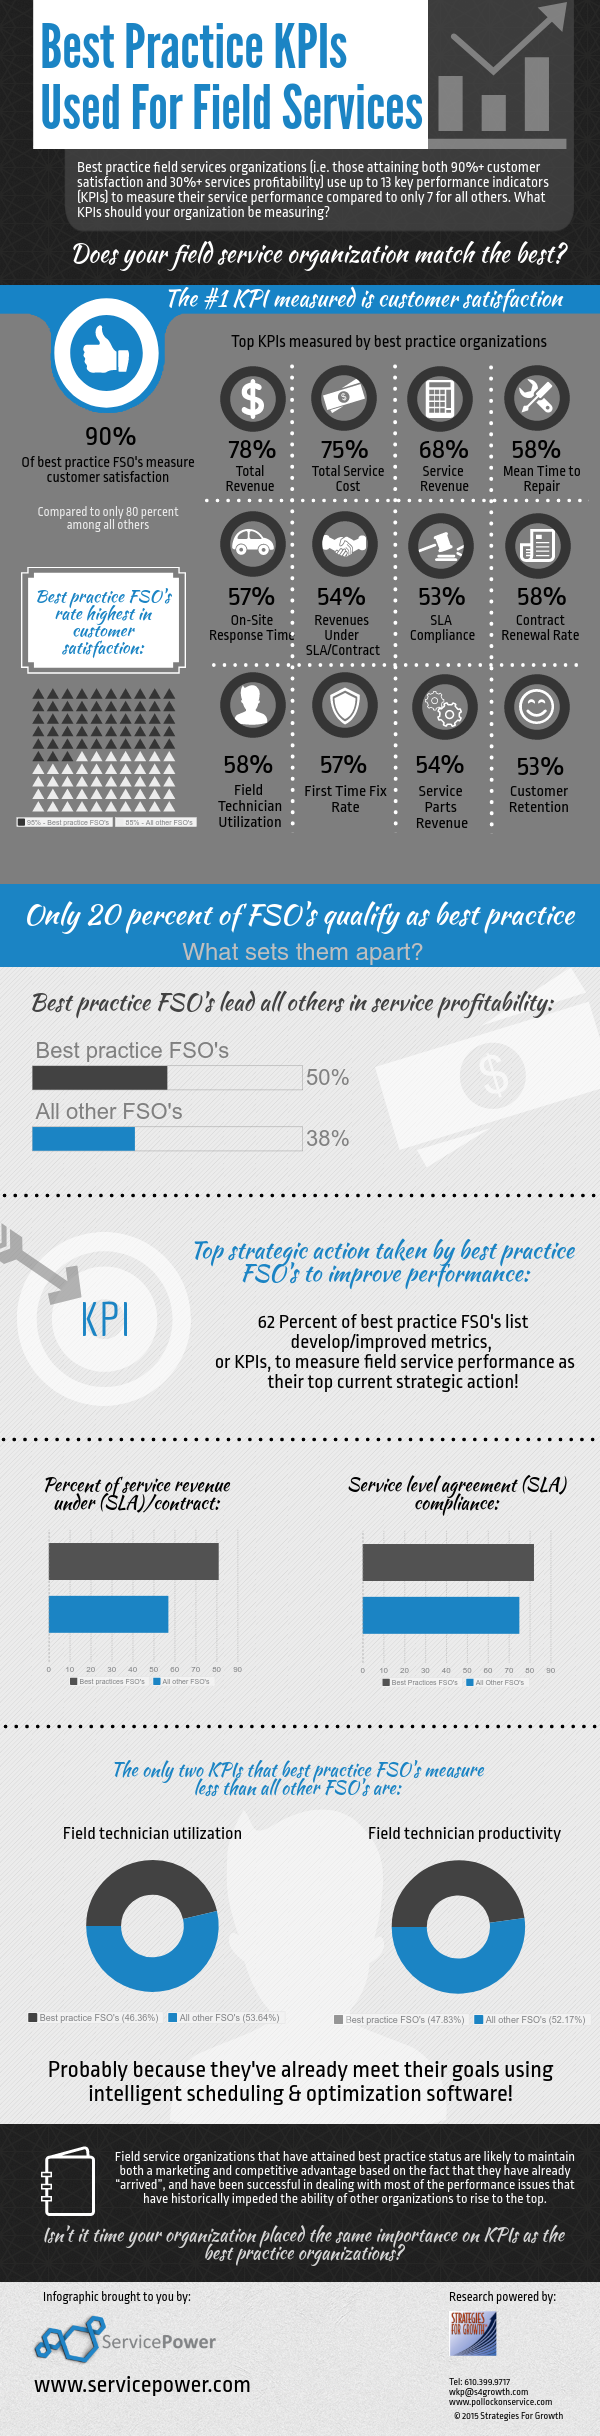 Best Practice KPIs Used For Field Services